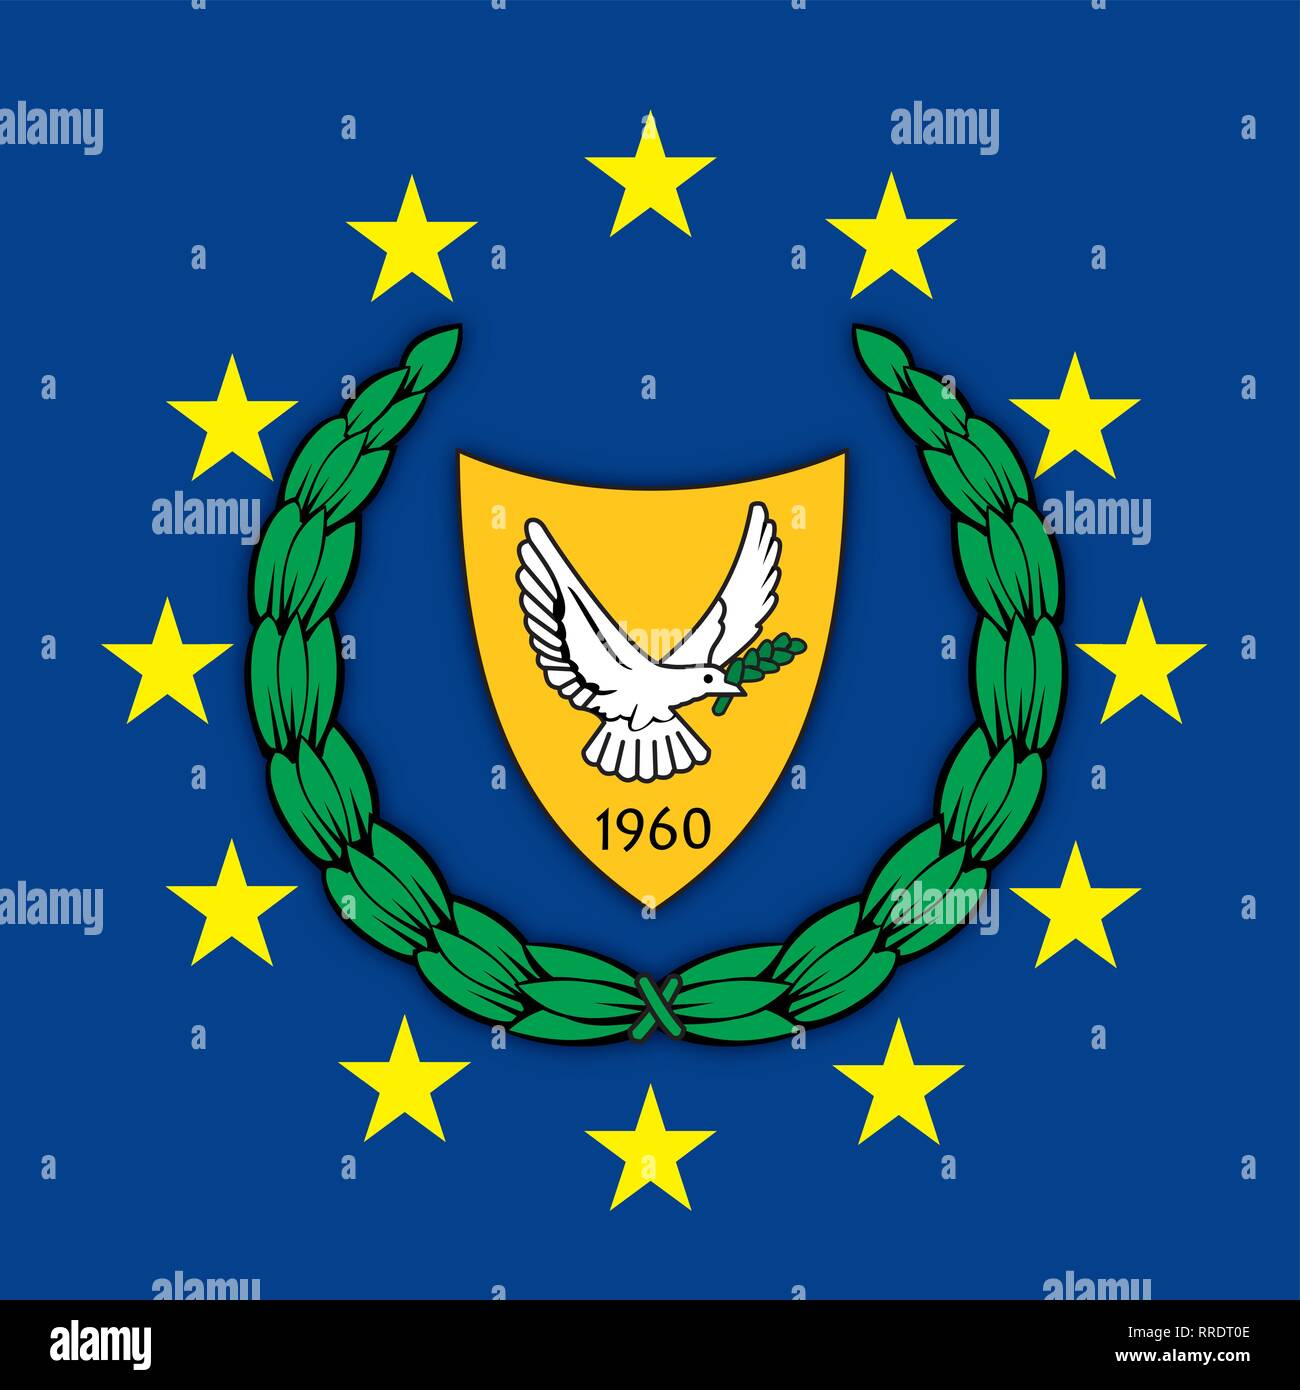 Cyprus coat of arms on the European Union flag, vector illustration - Stock Vector